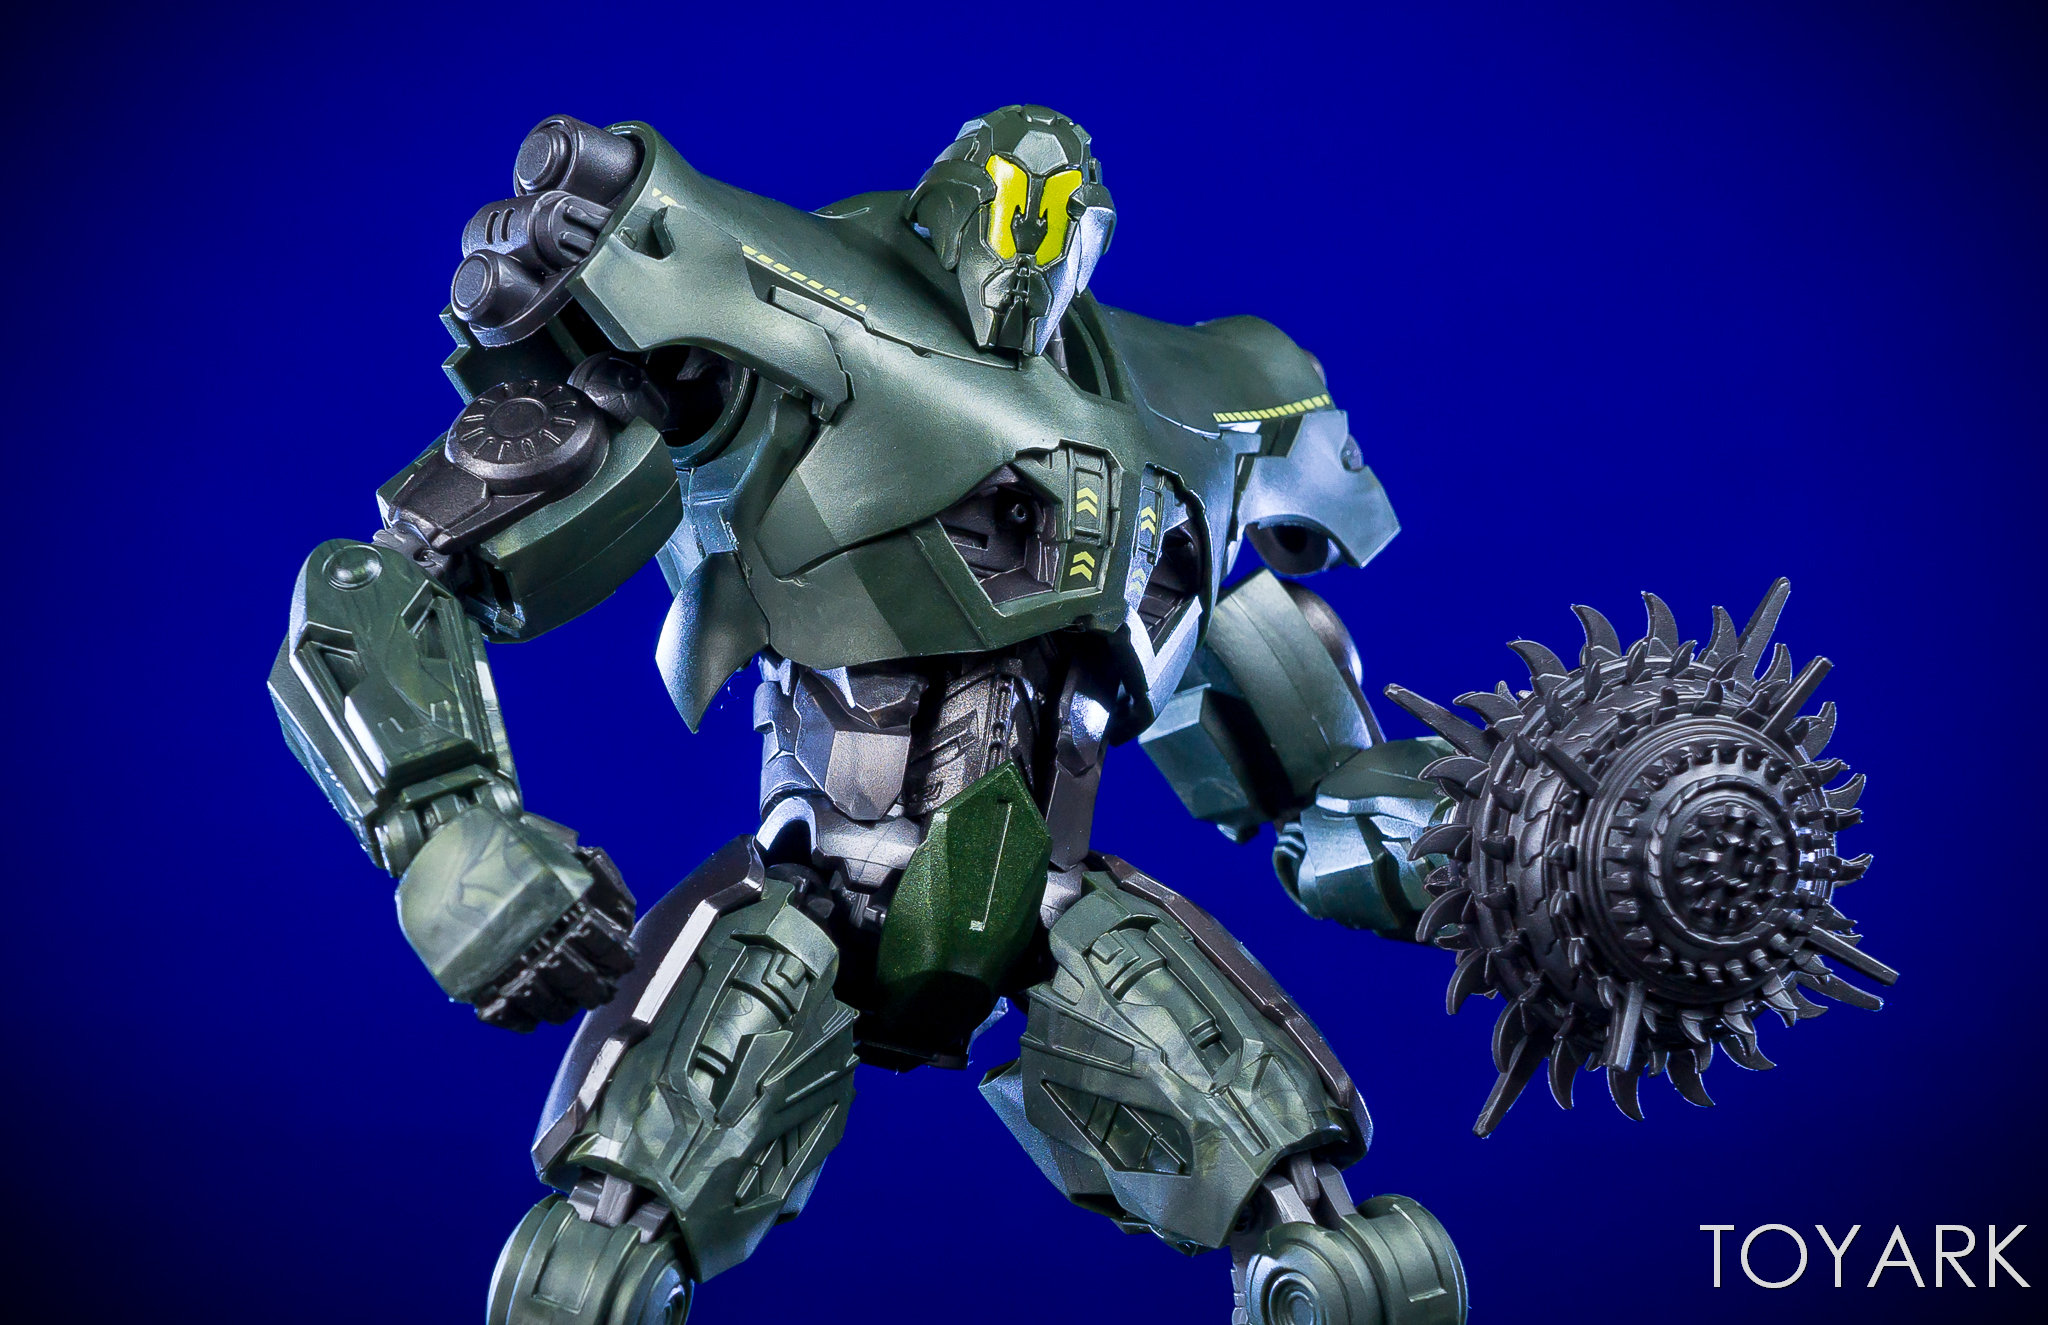 http://news.toyark.com/wp-content/uploads/sites/4/2018/02/Tamashii-Nations-Pacific-Rim-Uprising-065.jpg